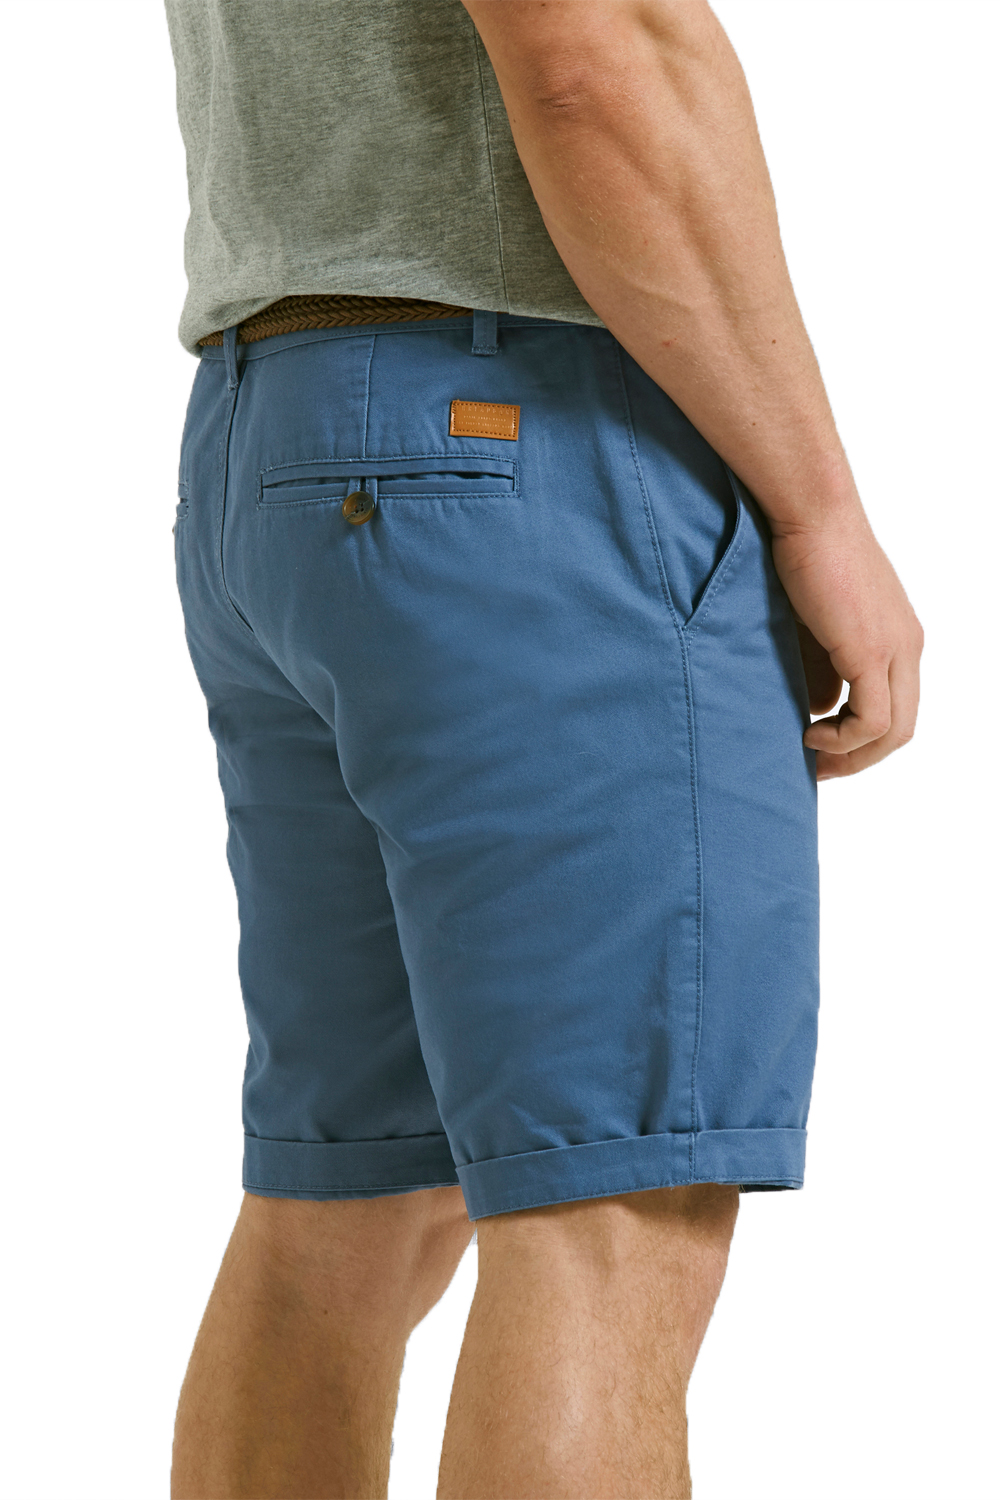 Threadbare-Mens-Slim-Fit-Belted-Chino-Shorts-Summer-Casual-Cotton-Smart-Bottoms thumbnail 9